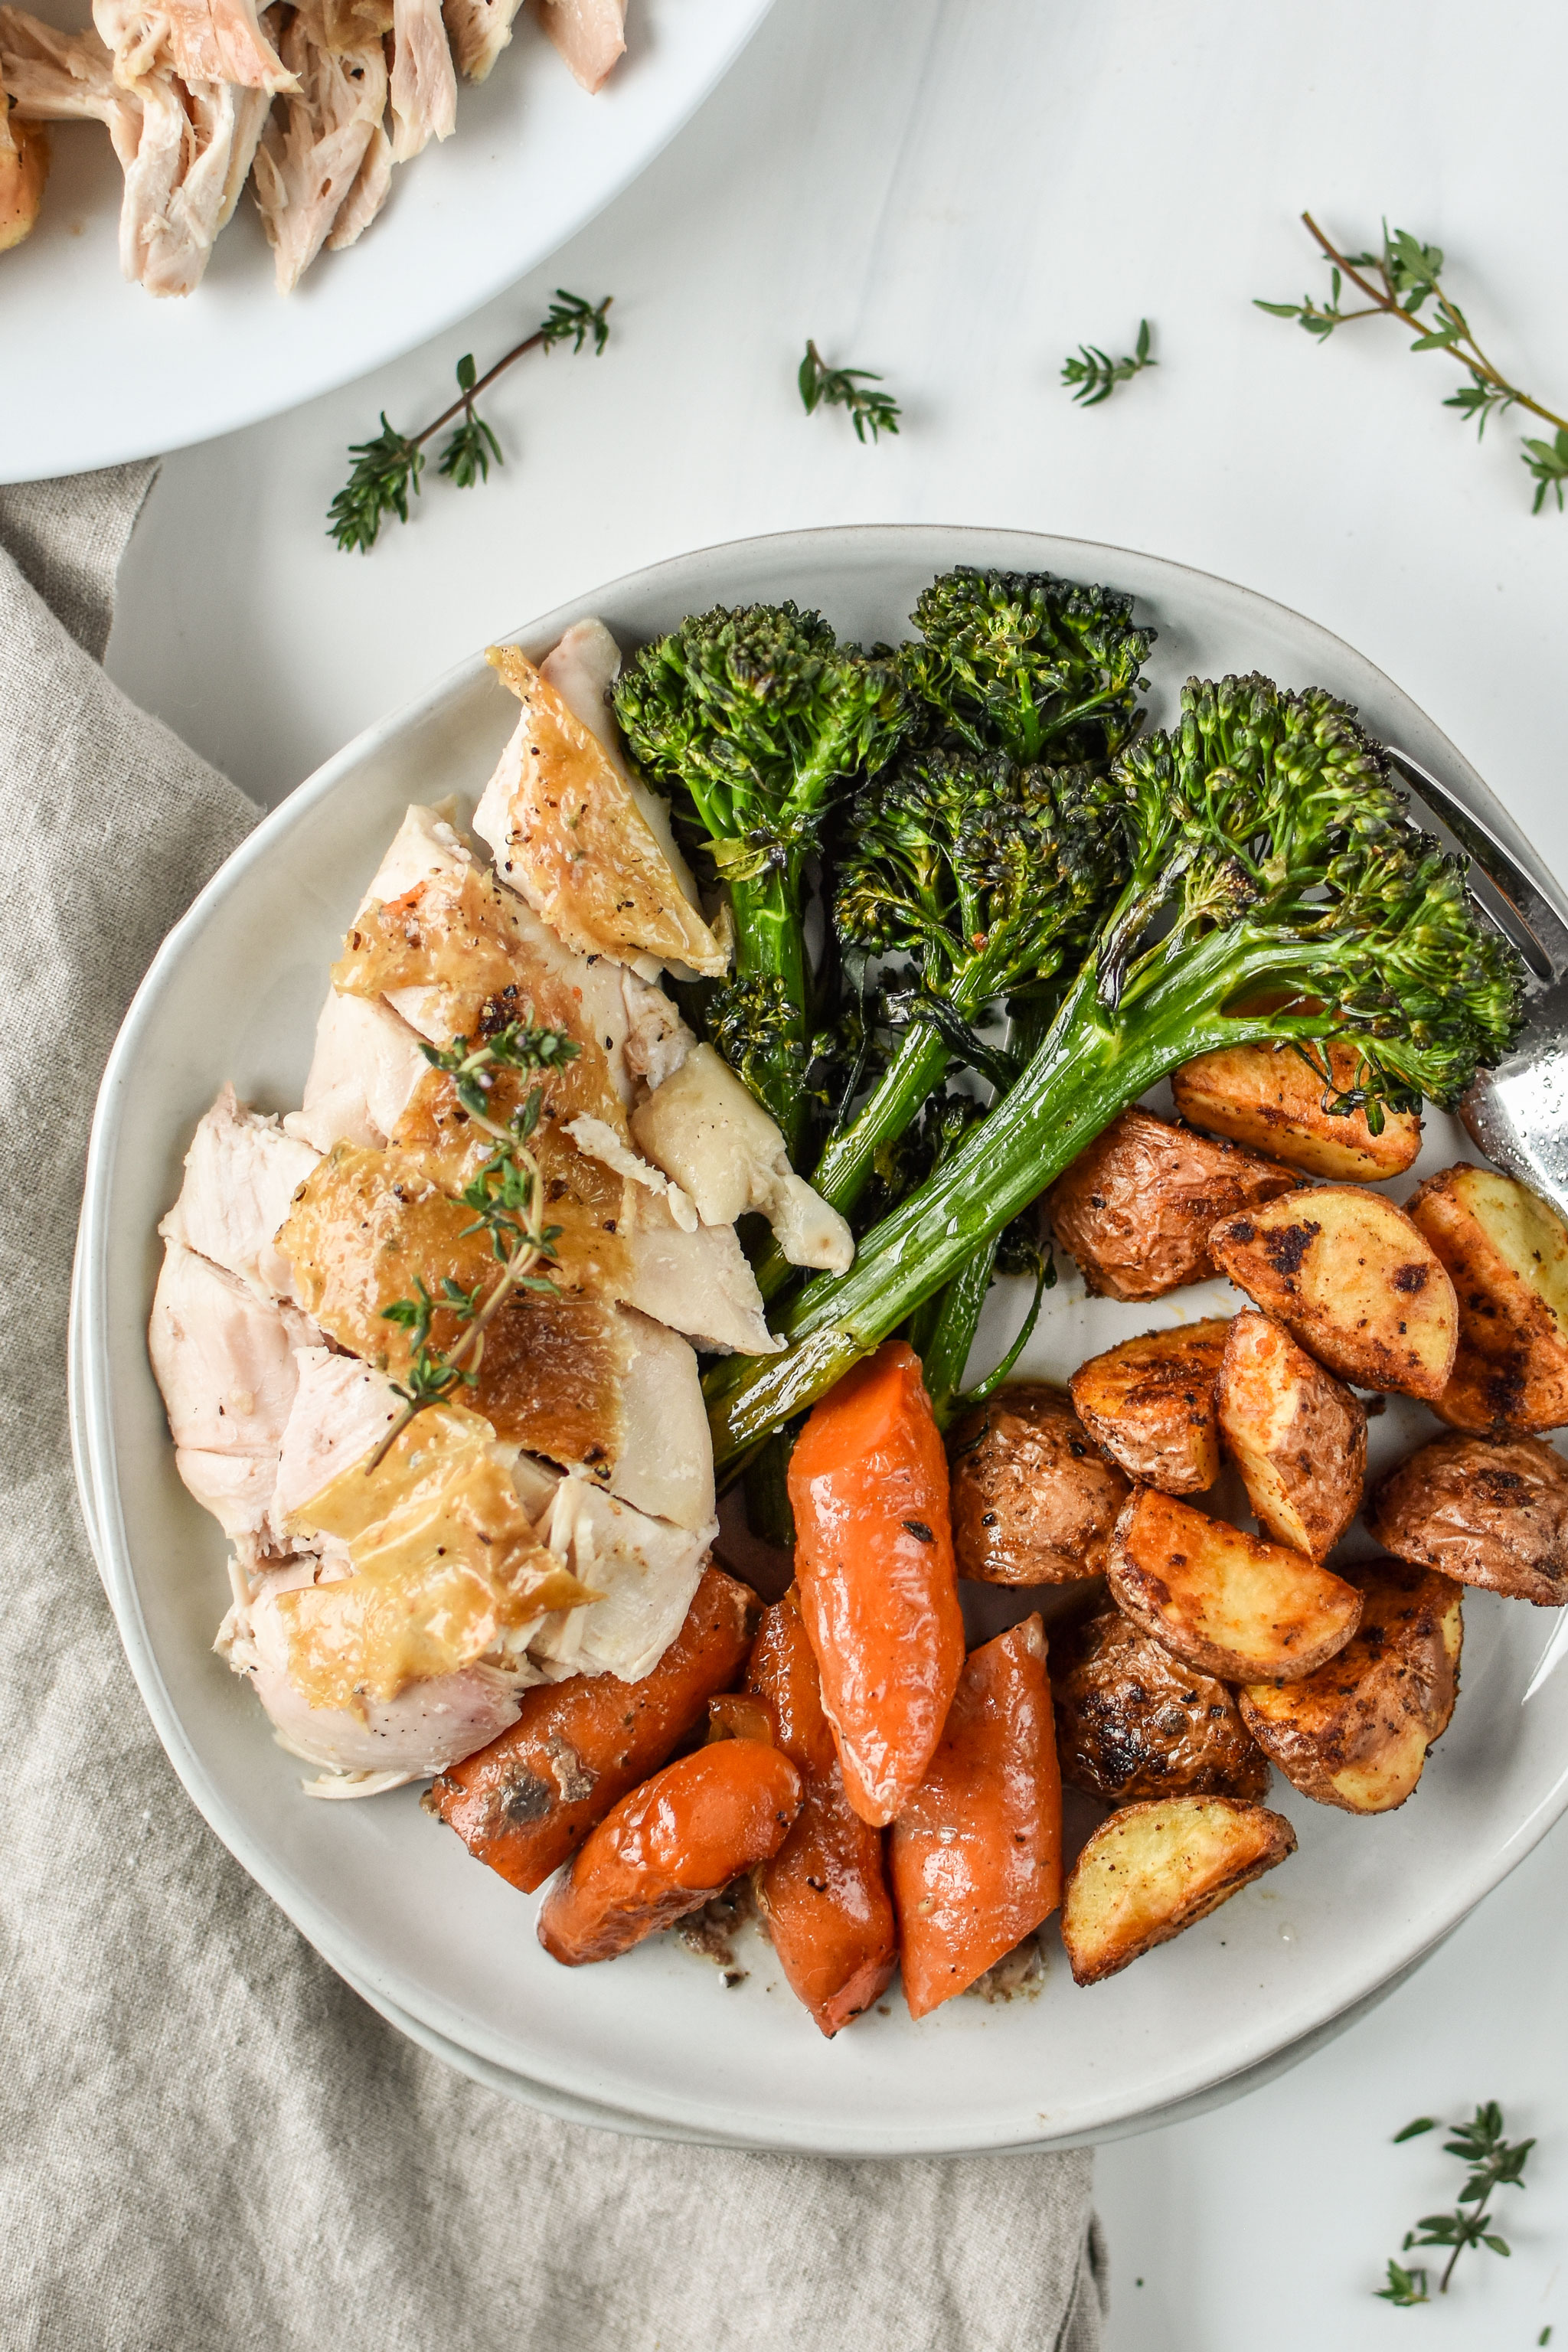 Simple whole roast chicken plated with broccolini, potatoes and carrots, a perfect Whole30 dinner!